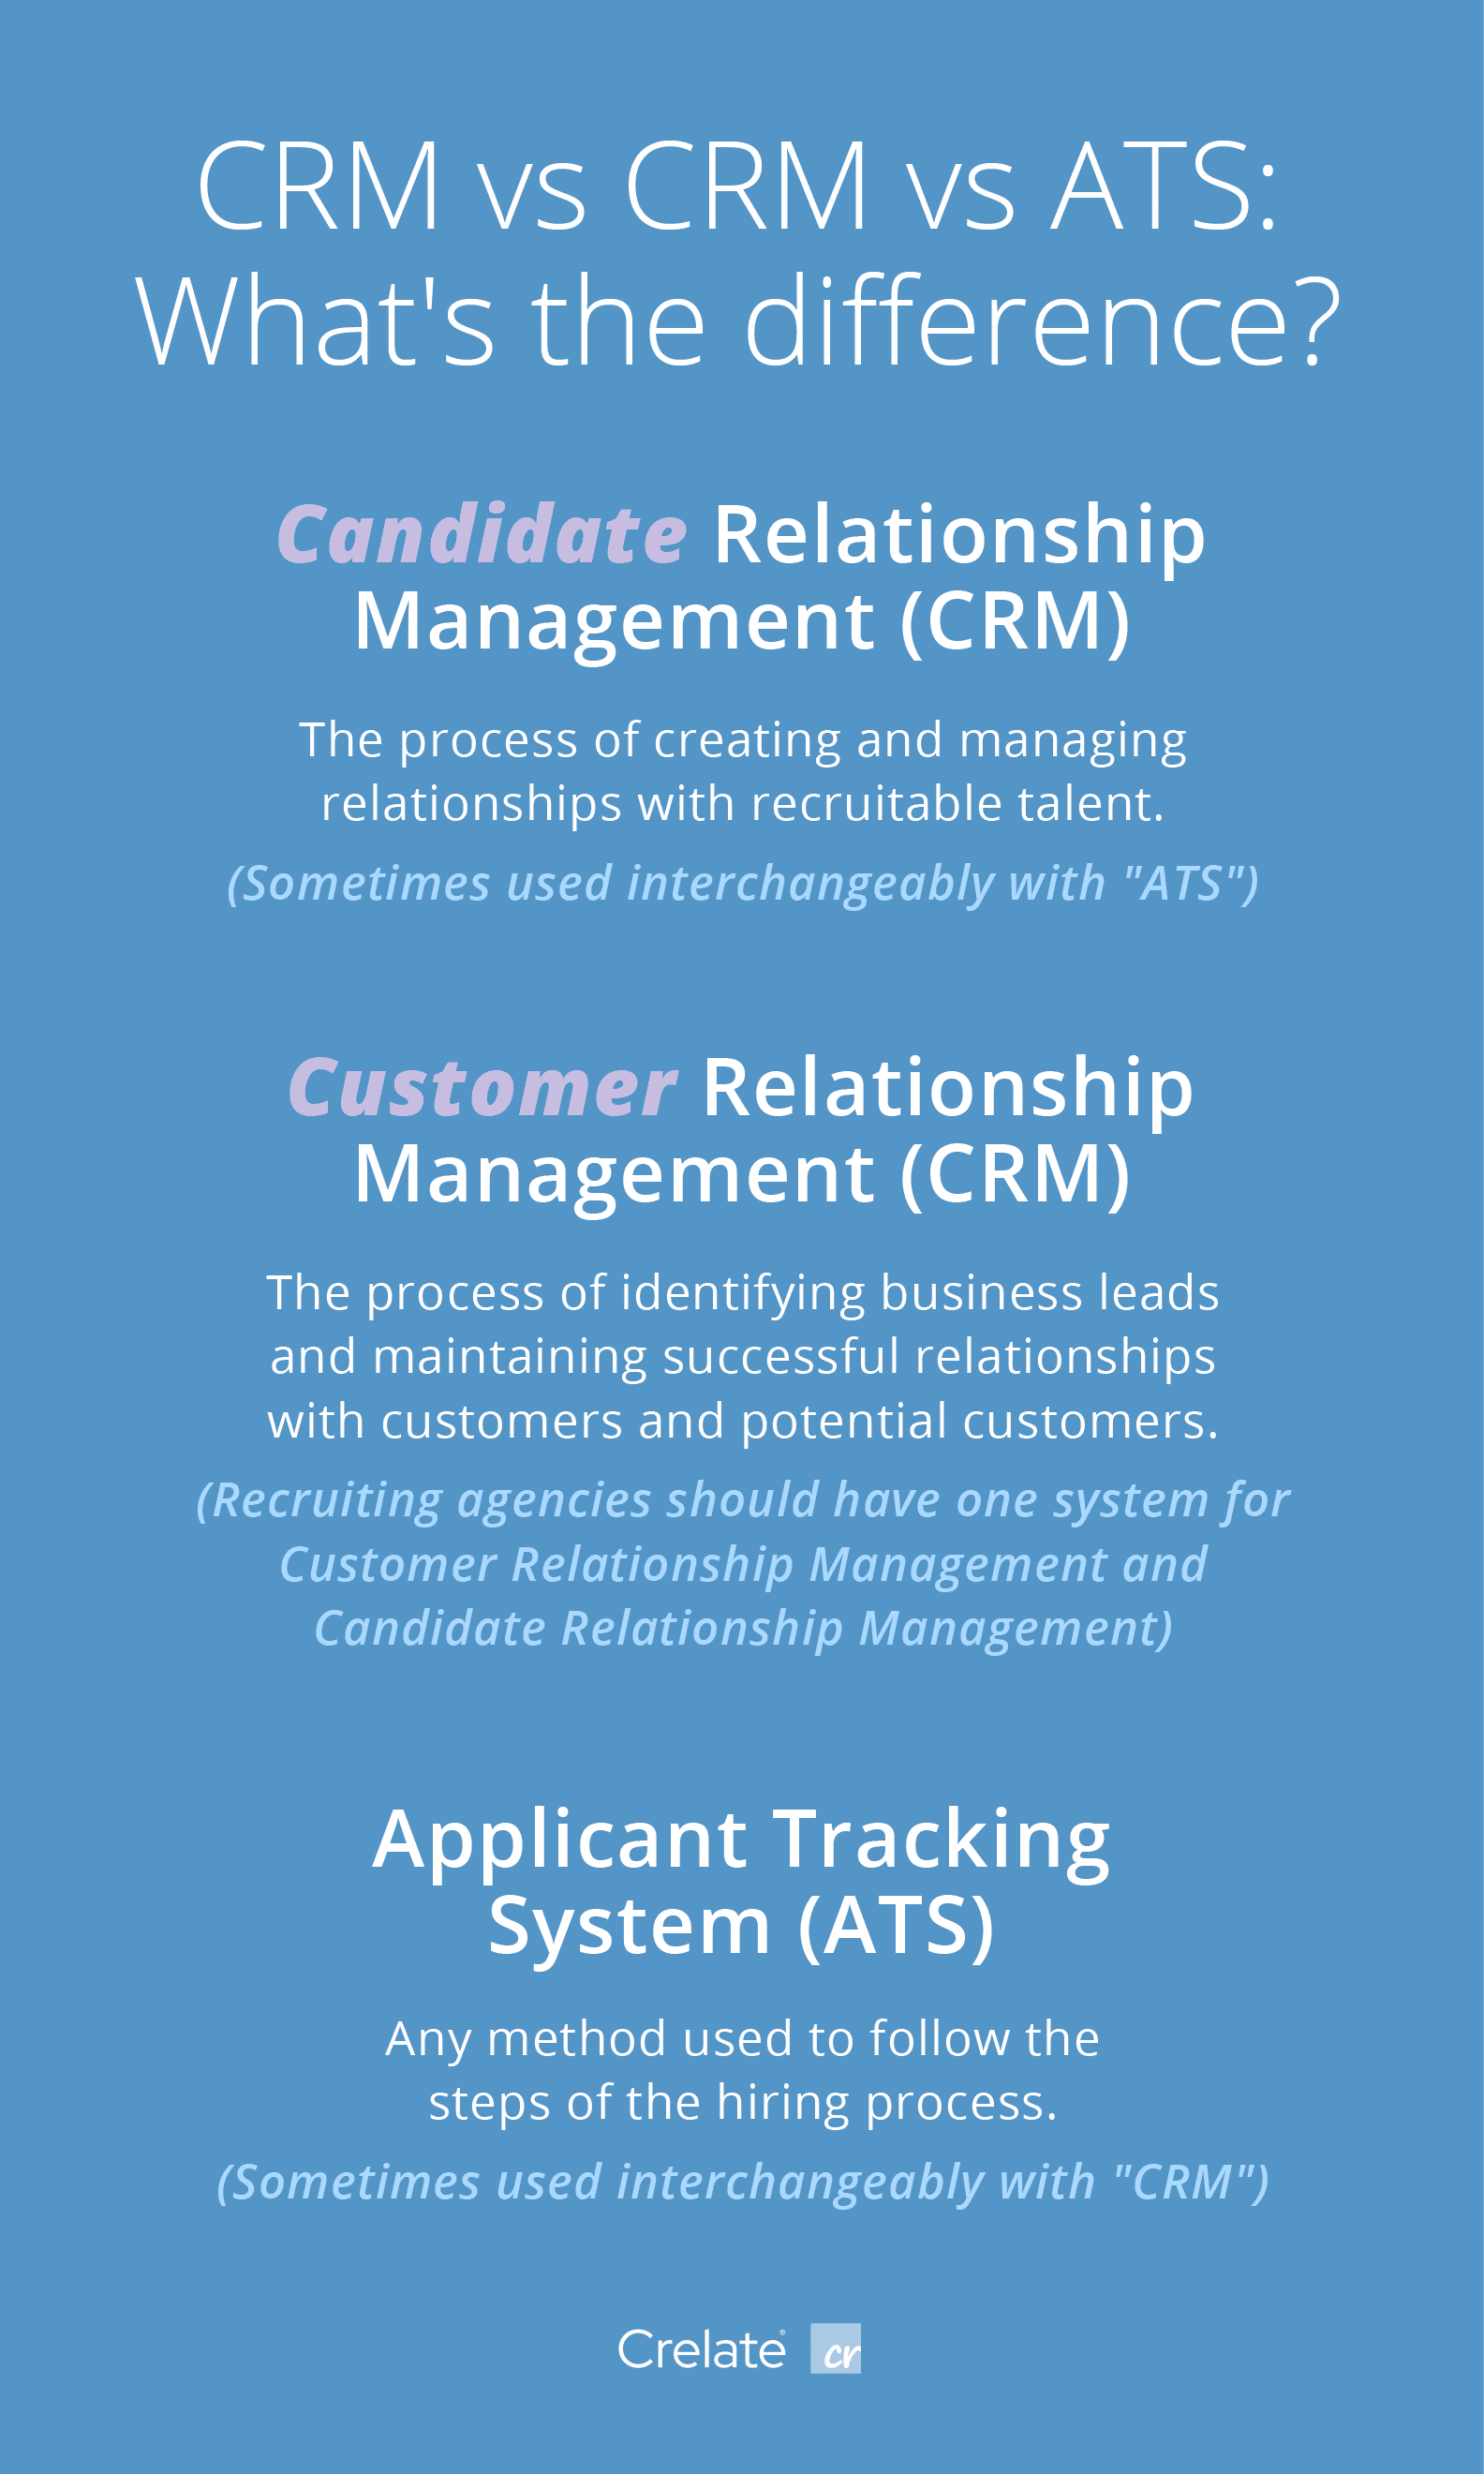 CRM vs ATS - What's the Difference?